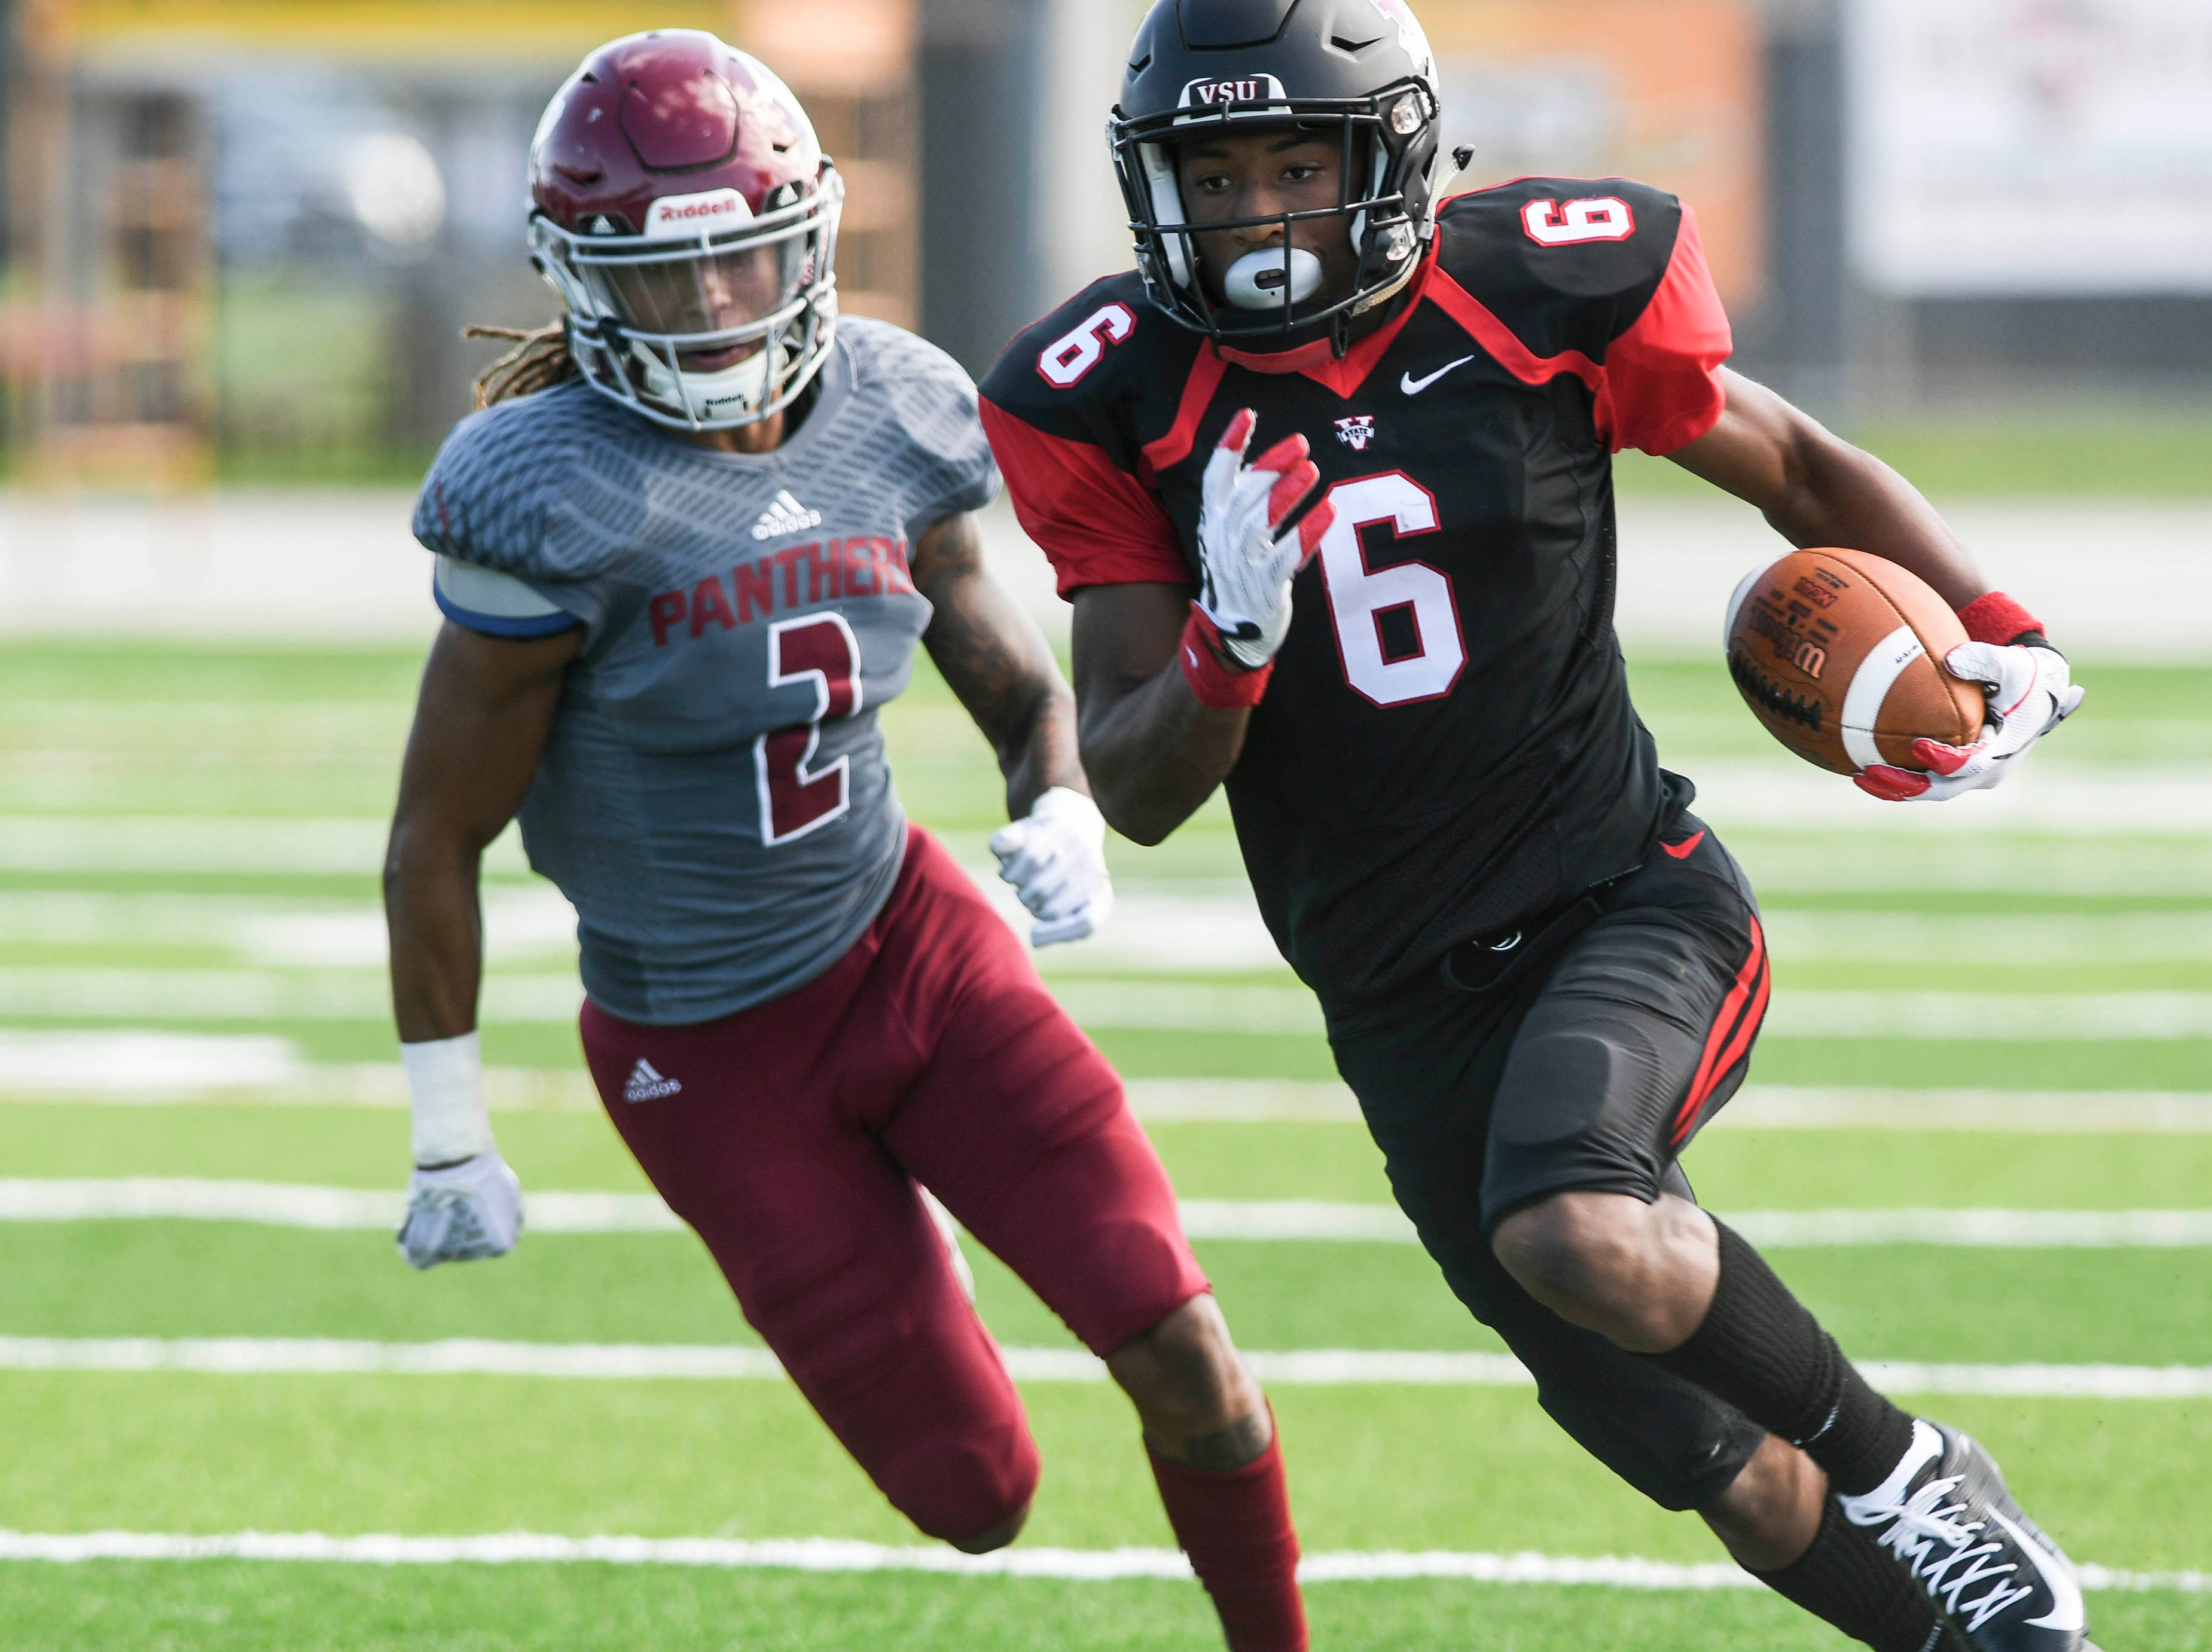 Lio'undre Gallimore of Valdosta State is pursued by DeVontae Weekley of Florida Tech during Saturday's game.